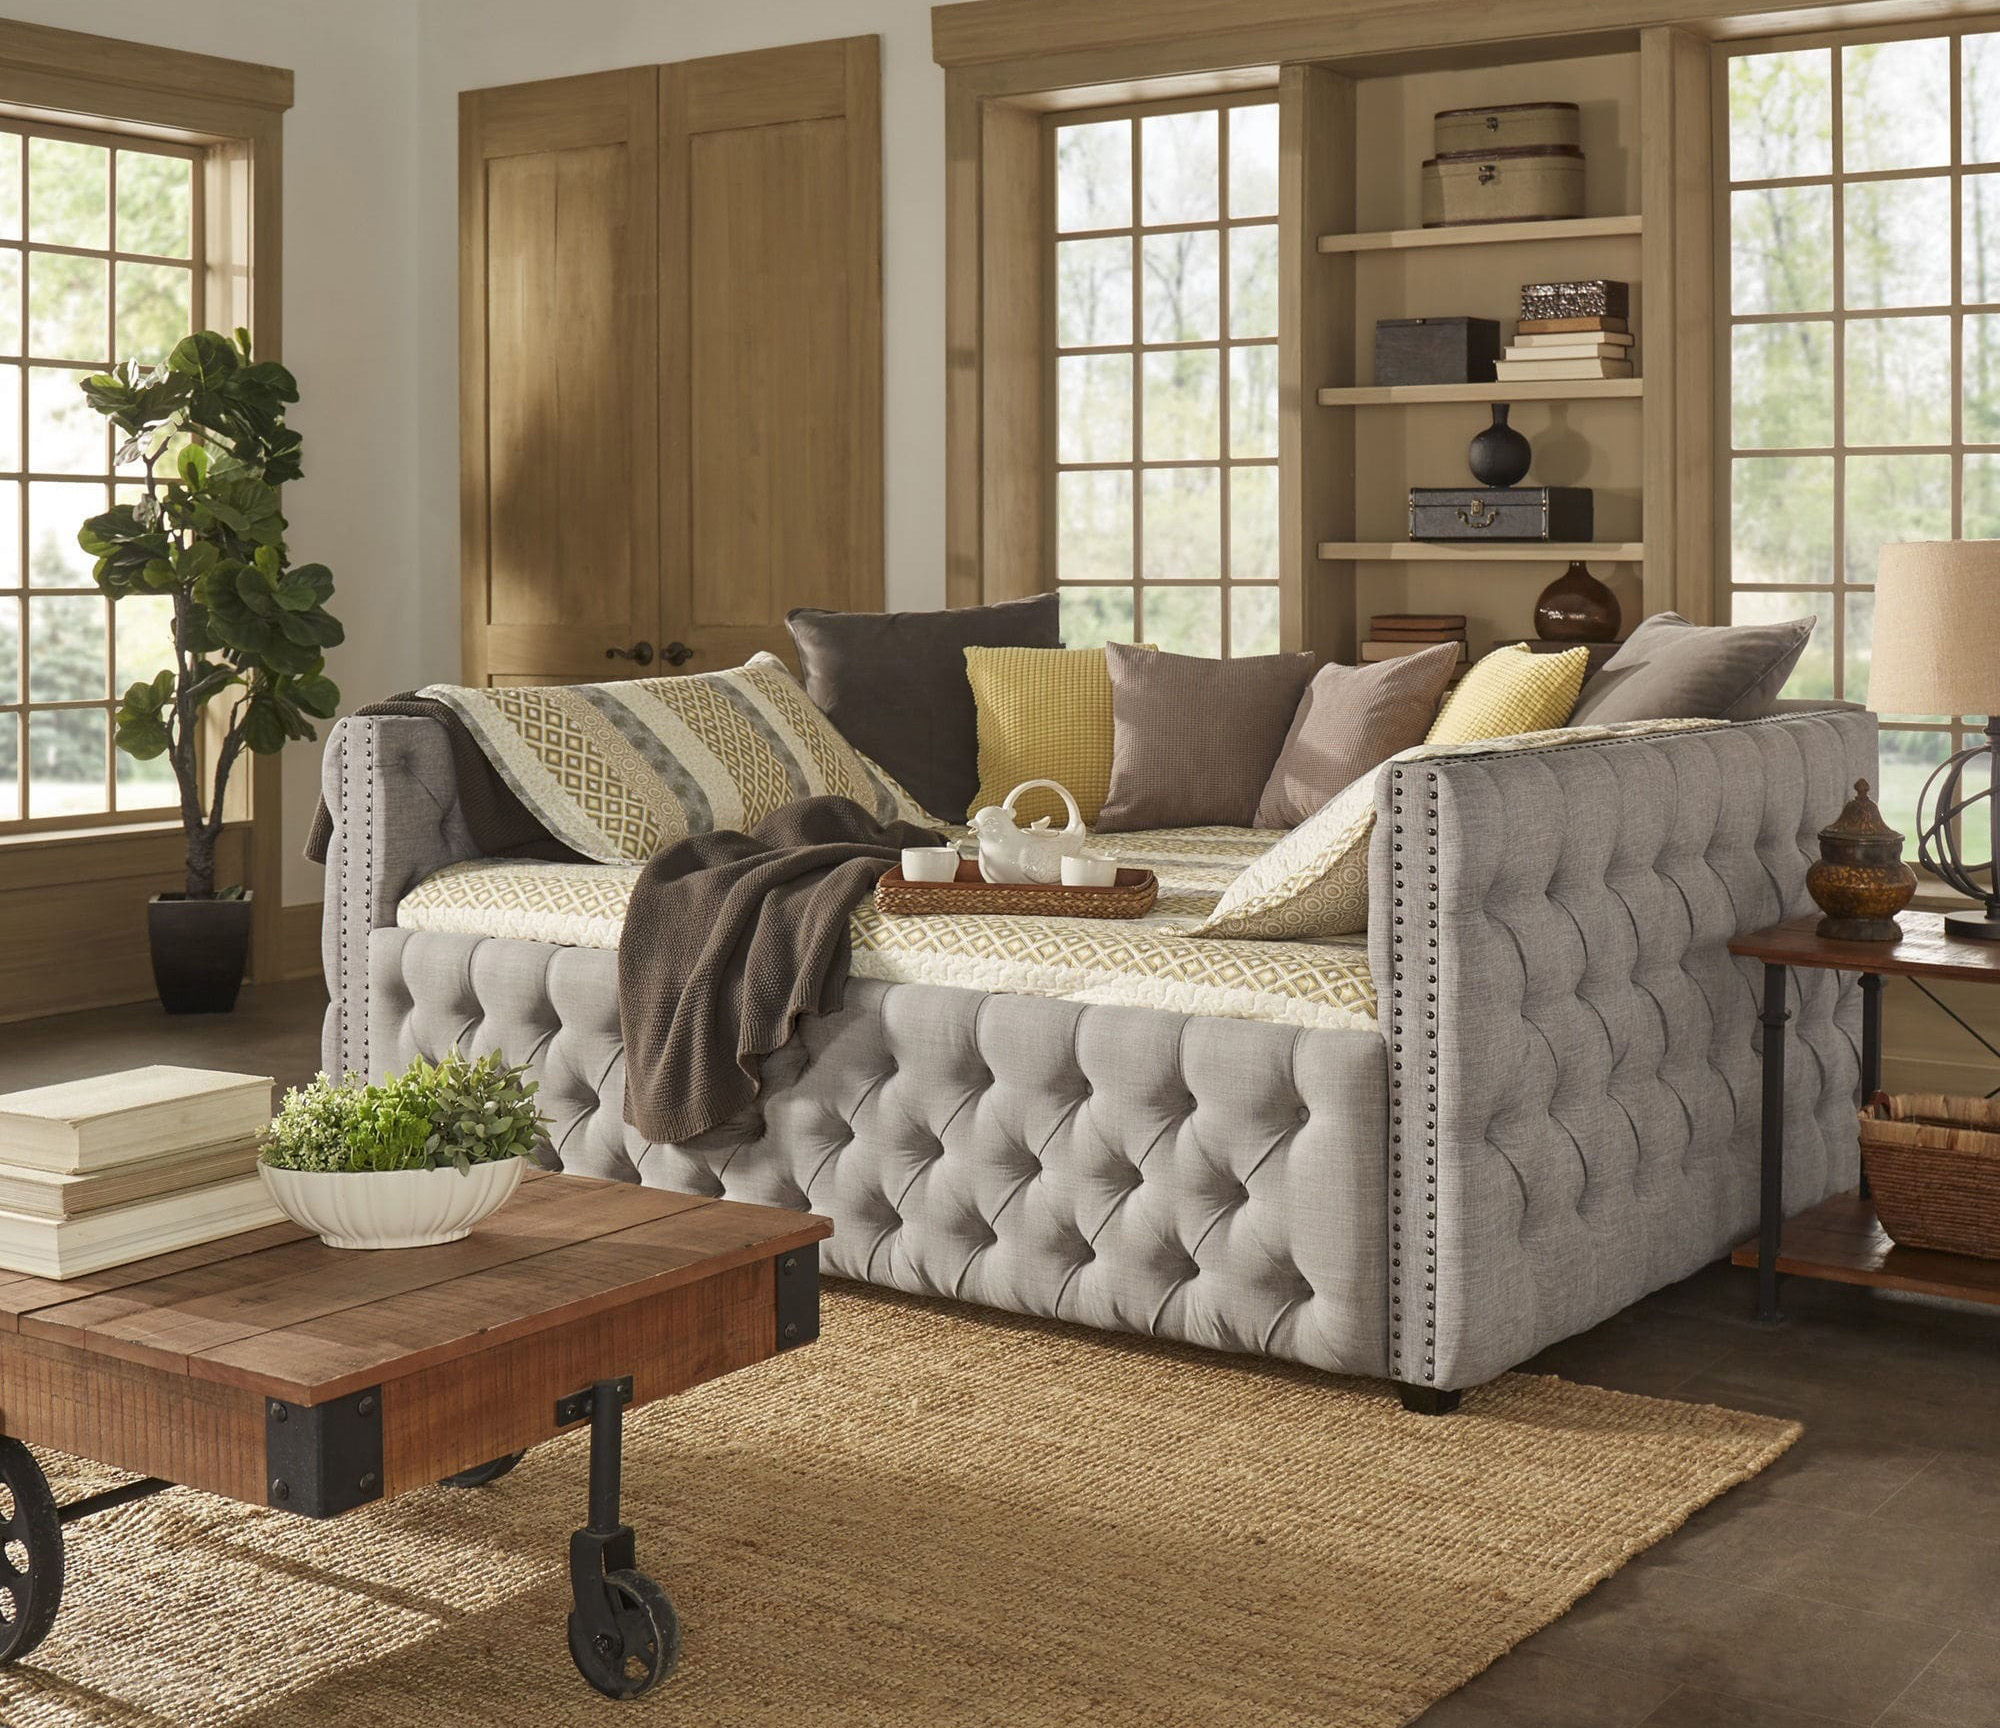 Knightsbridge-Queen-size-Tufted-Nailhead-Chesterfield-Daybed ...